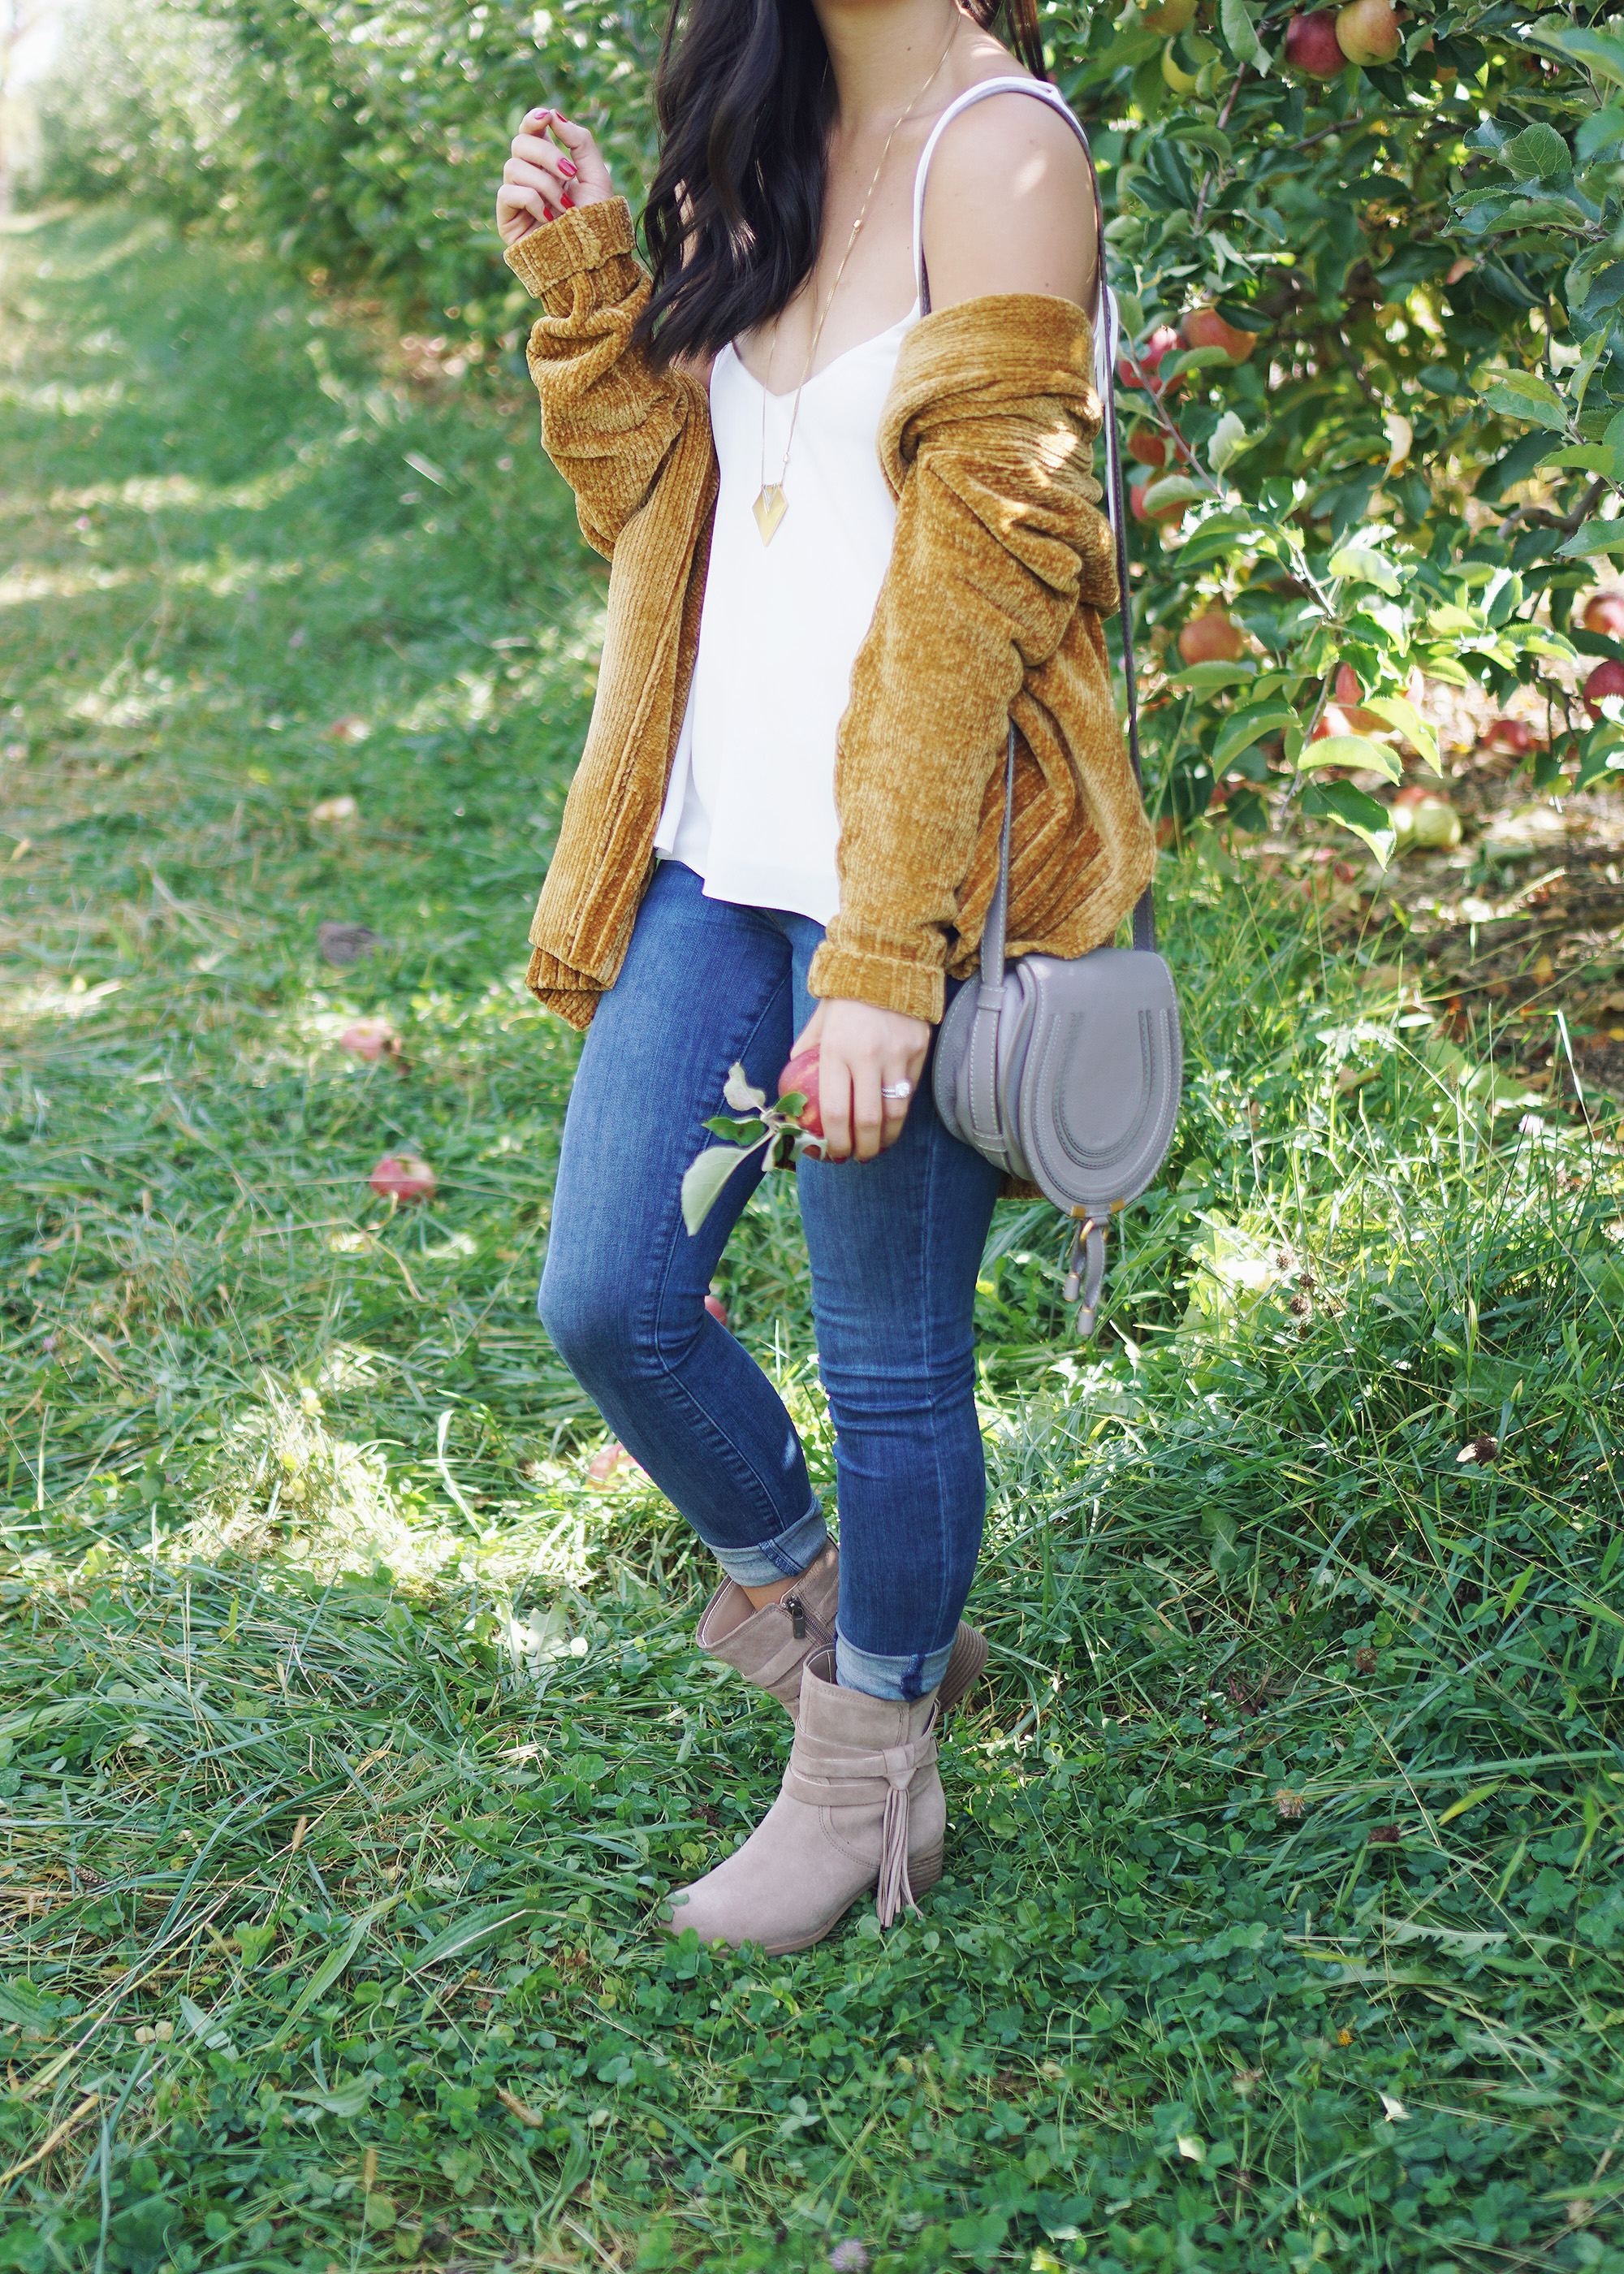 Fall Outfit Inspiration: Chenille Sweater & Skinny Jeans